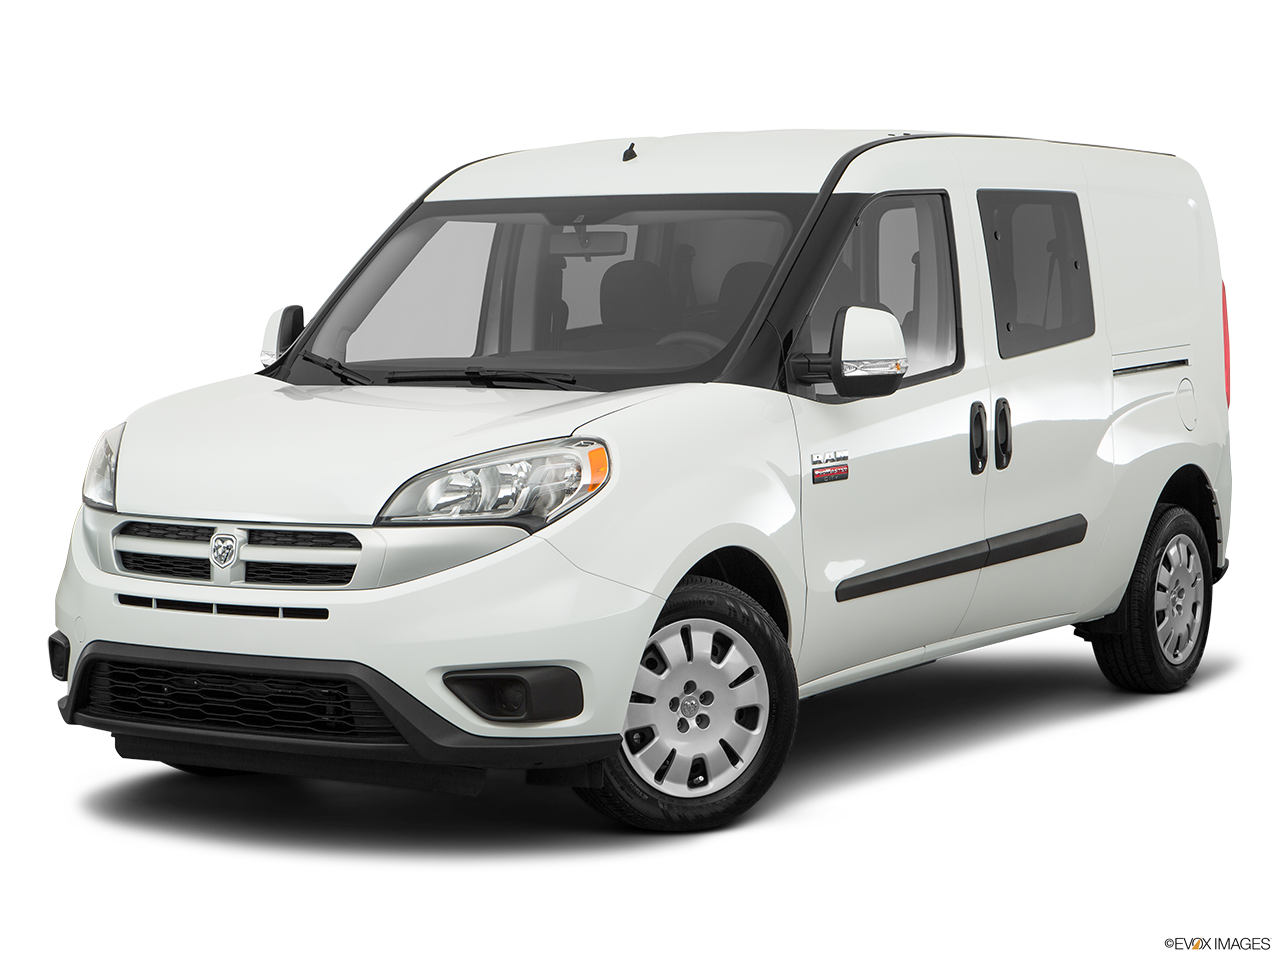 Test Drive A 2017 RAM Promaster City at Carl Burger Dodge Chrysler Jeep Ram World in La Mesa